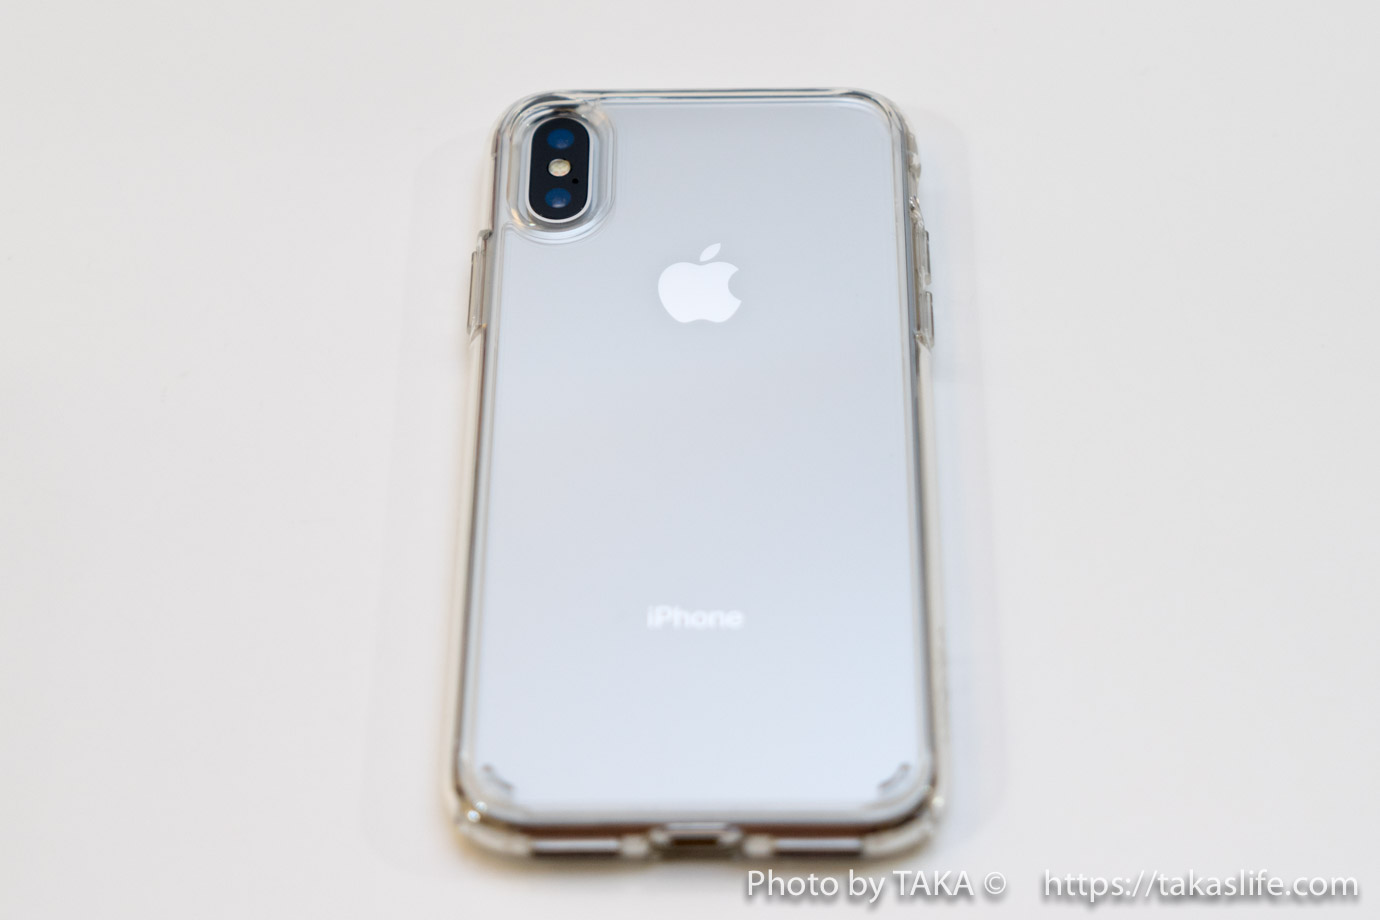 Spigen iPhone X ケース 08 20171113 215631